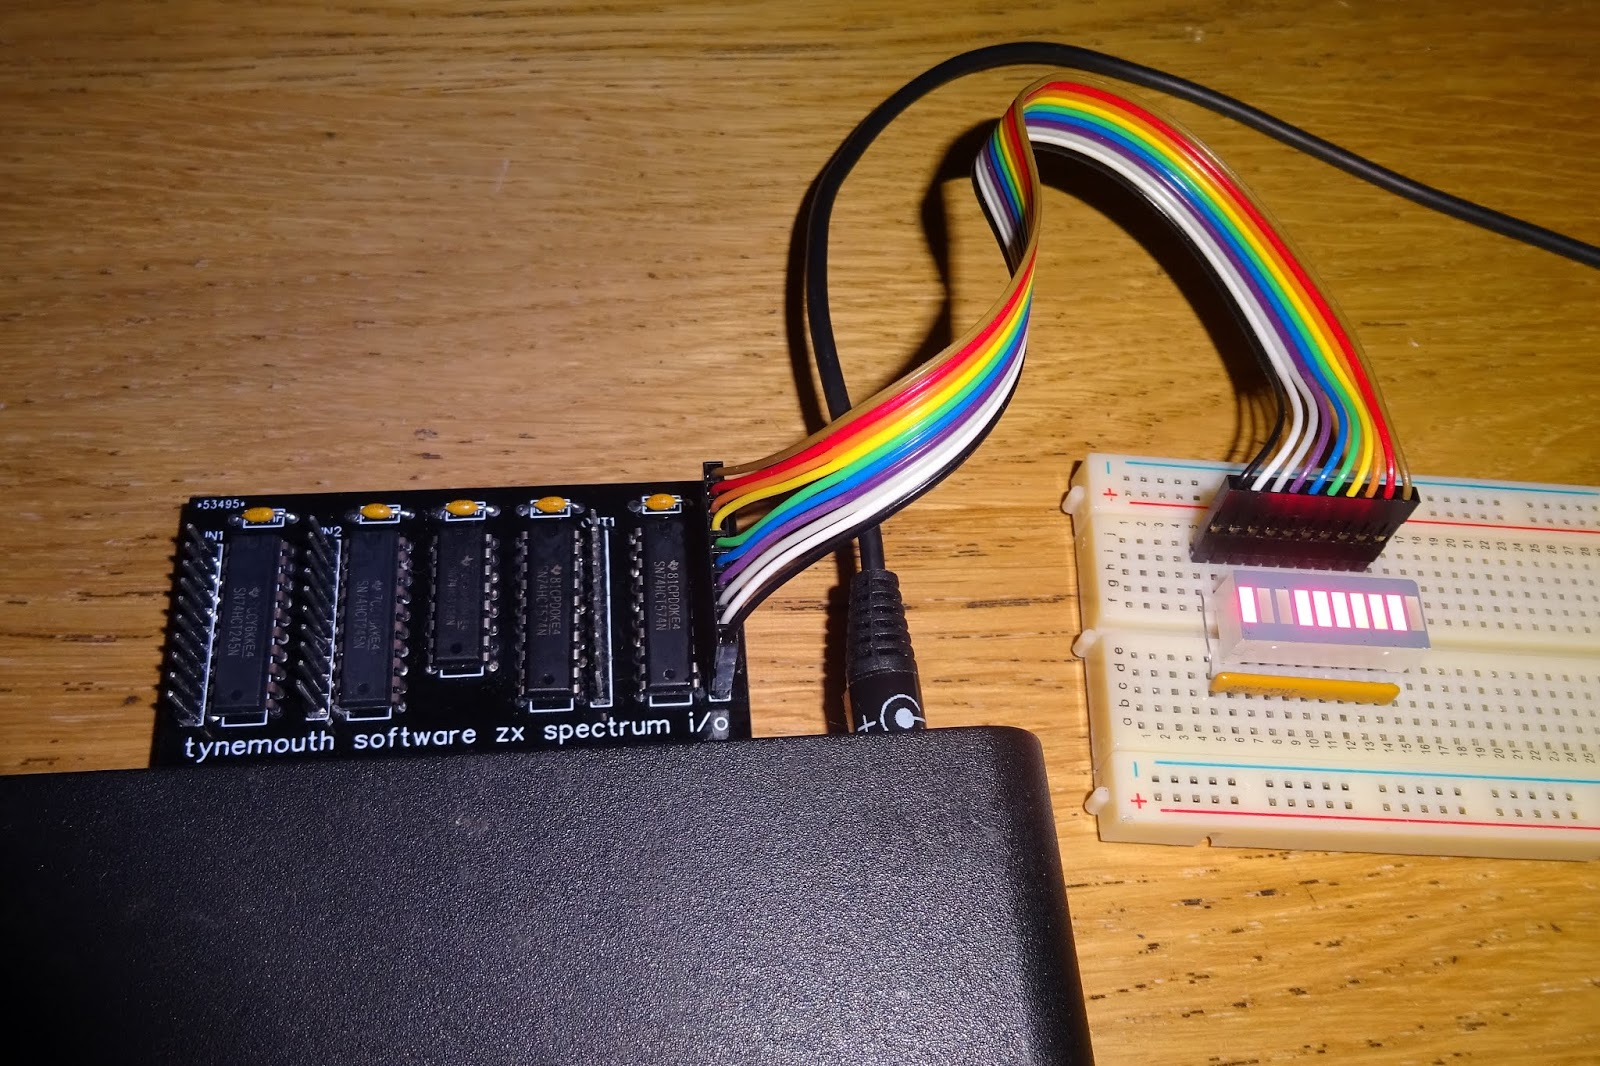 Tynemouth Software Zx Spectrum Io Interface The Basic Digital Computing Circuitry Used In Sinclair Input Command Is